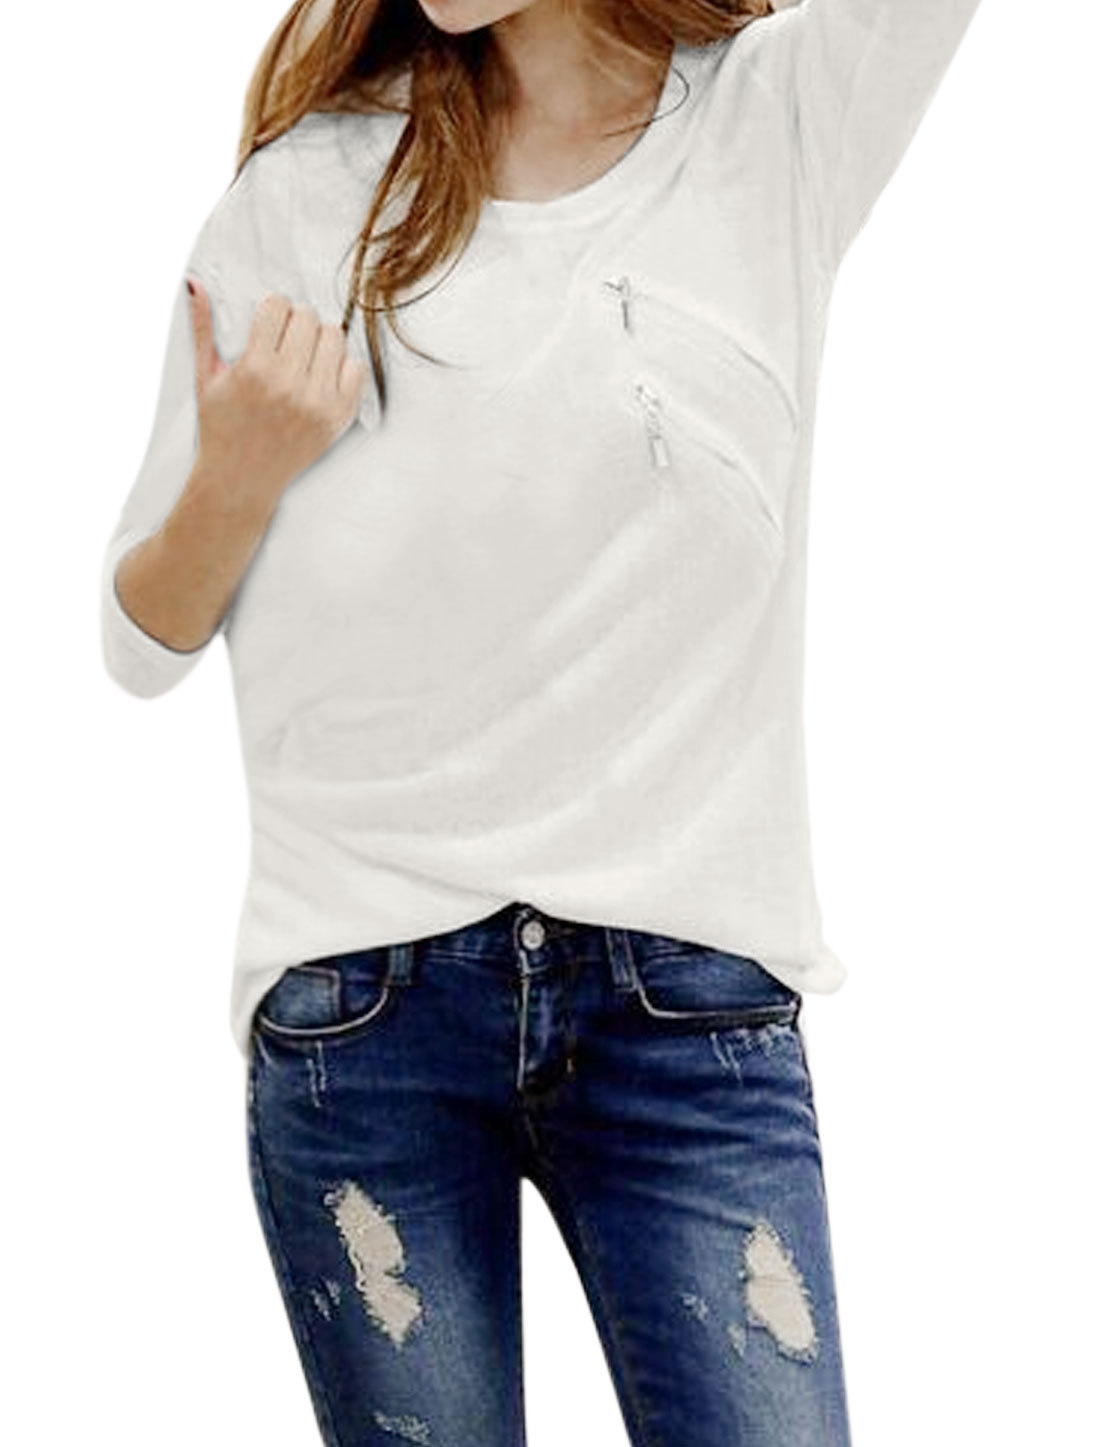 Women Round Neck Long Sleeves Two Zippers Embellished Knit T-Shirt White M